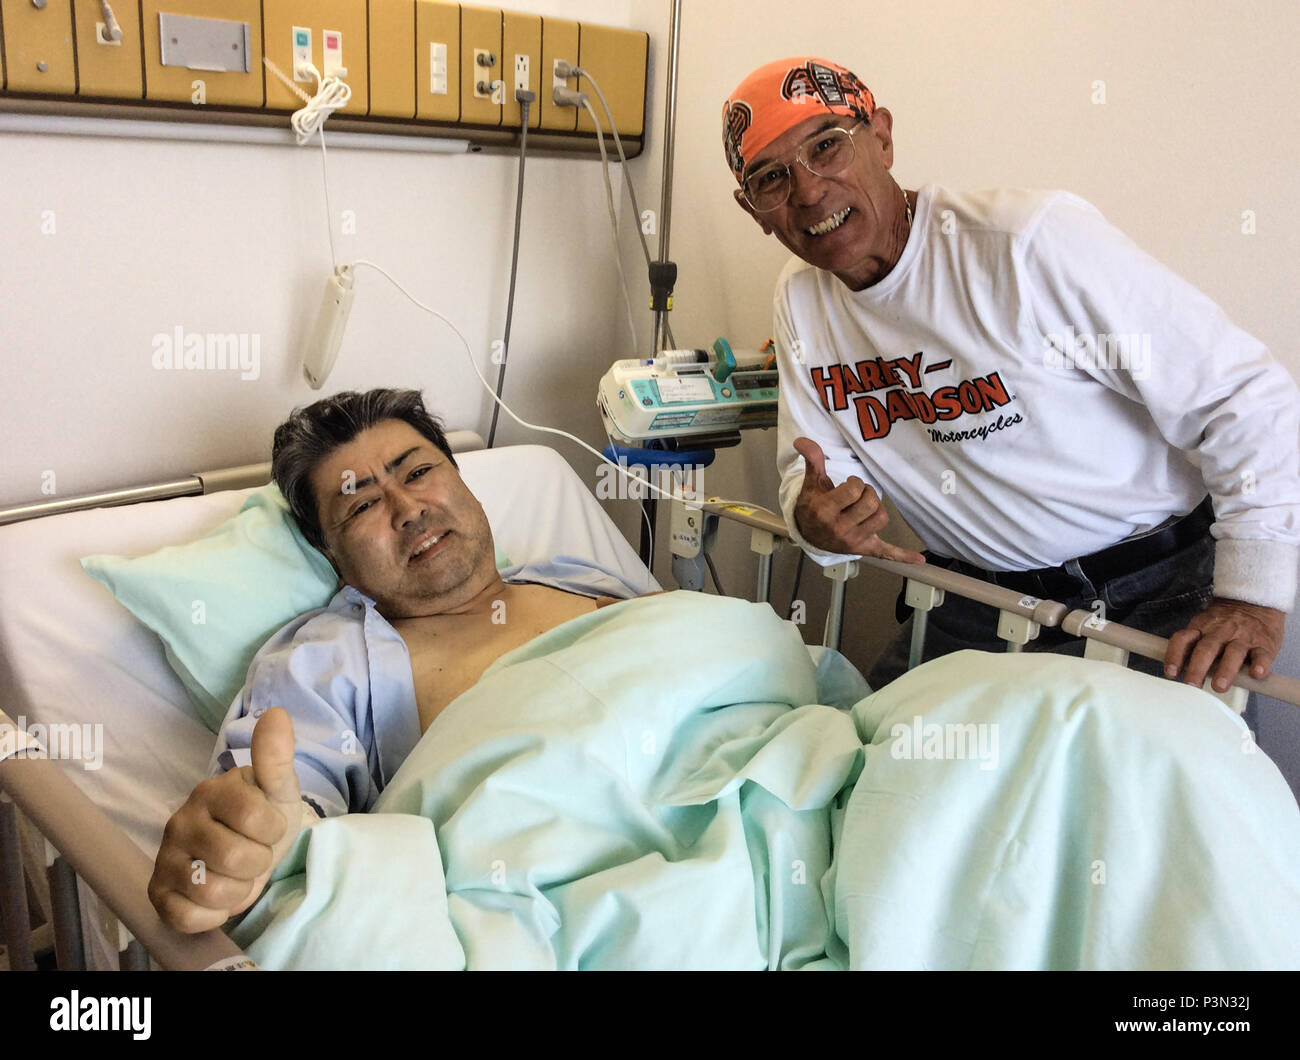 John D. Trent (right), a Defense Commissary Agency contractor and motorcycle enthusiast living in Japan, visits his friend and fellow rider, Makoto Tanabe (left), as he recovers from his injuries sustained in an accident that occurred July 3, 2016, in Shizuoka Prefecture. Trent saved Tanabe's life during a leisure group ride with the Hard n' Fast international riding club. While turning onto a bridge, Tanabe briefly lost control of his bike, hitting the bridge's sidewall and nearly severing his left foot. Trent applied first aid by using a bungee cord as a tourniquet, thereby stopping the blee - Stock Image